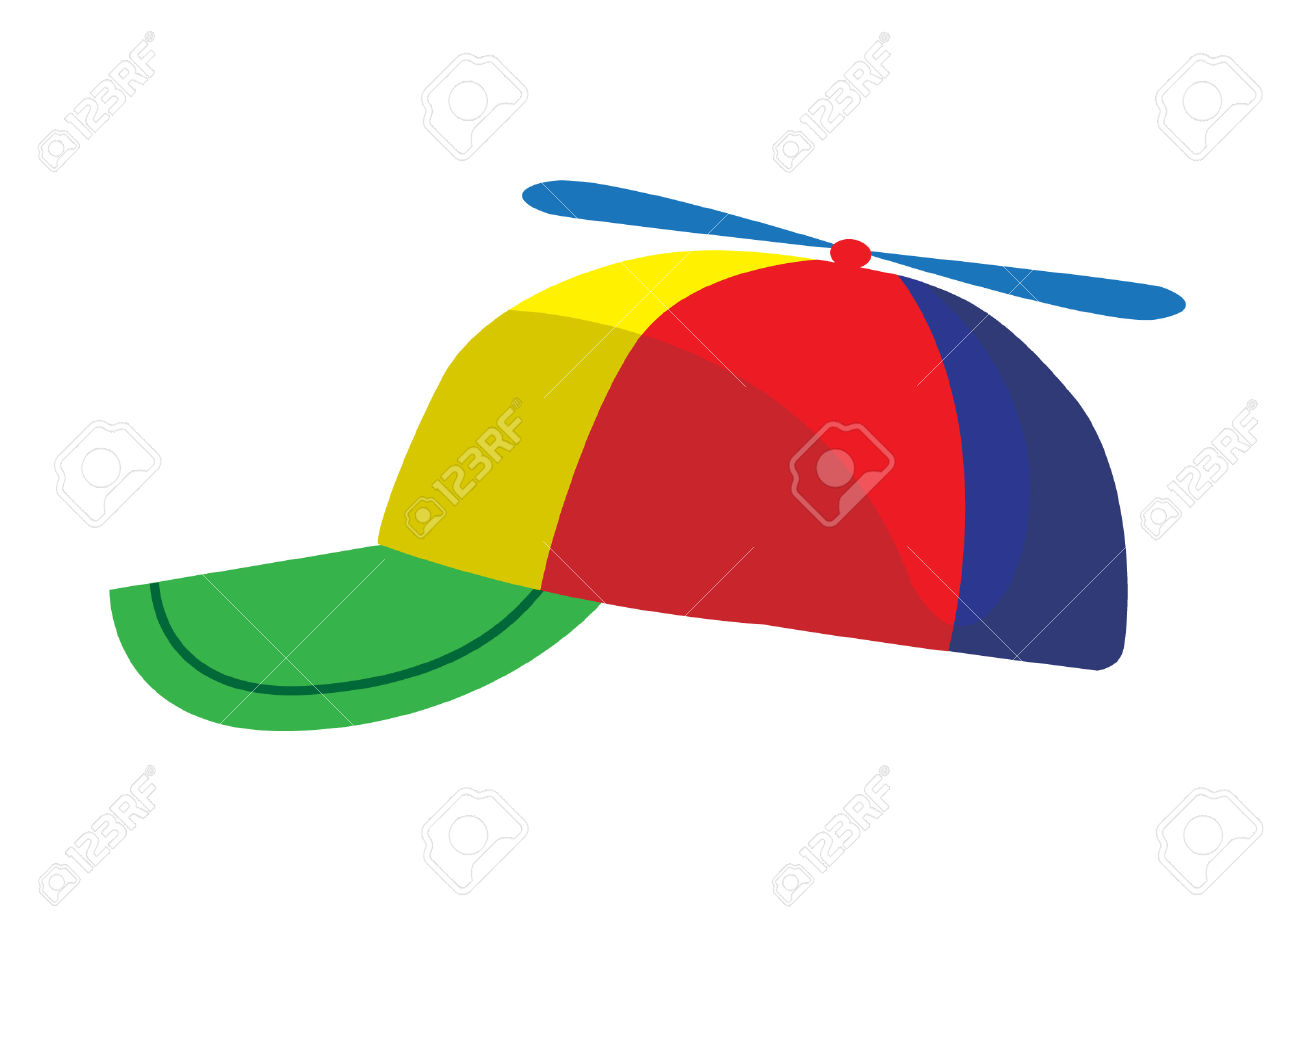 Propeller Cap Illustration Royalty Free Cliparts, Vectors, And.